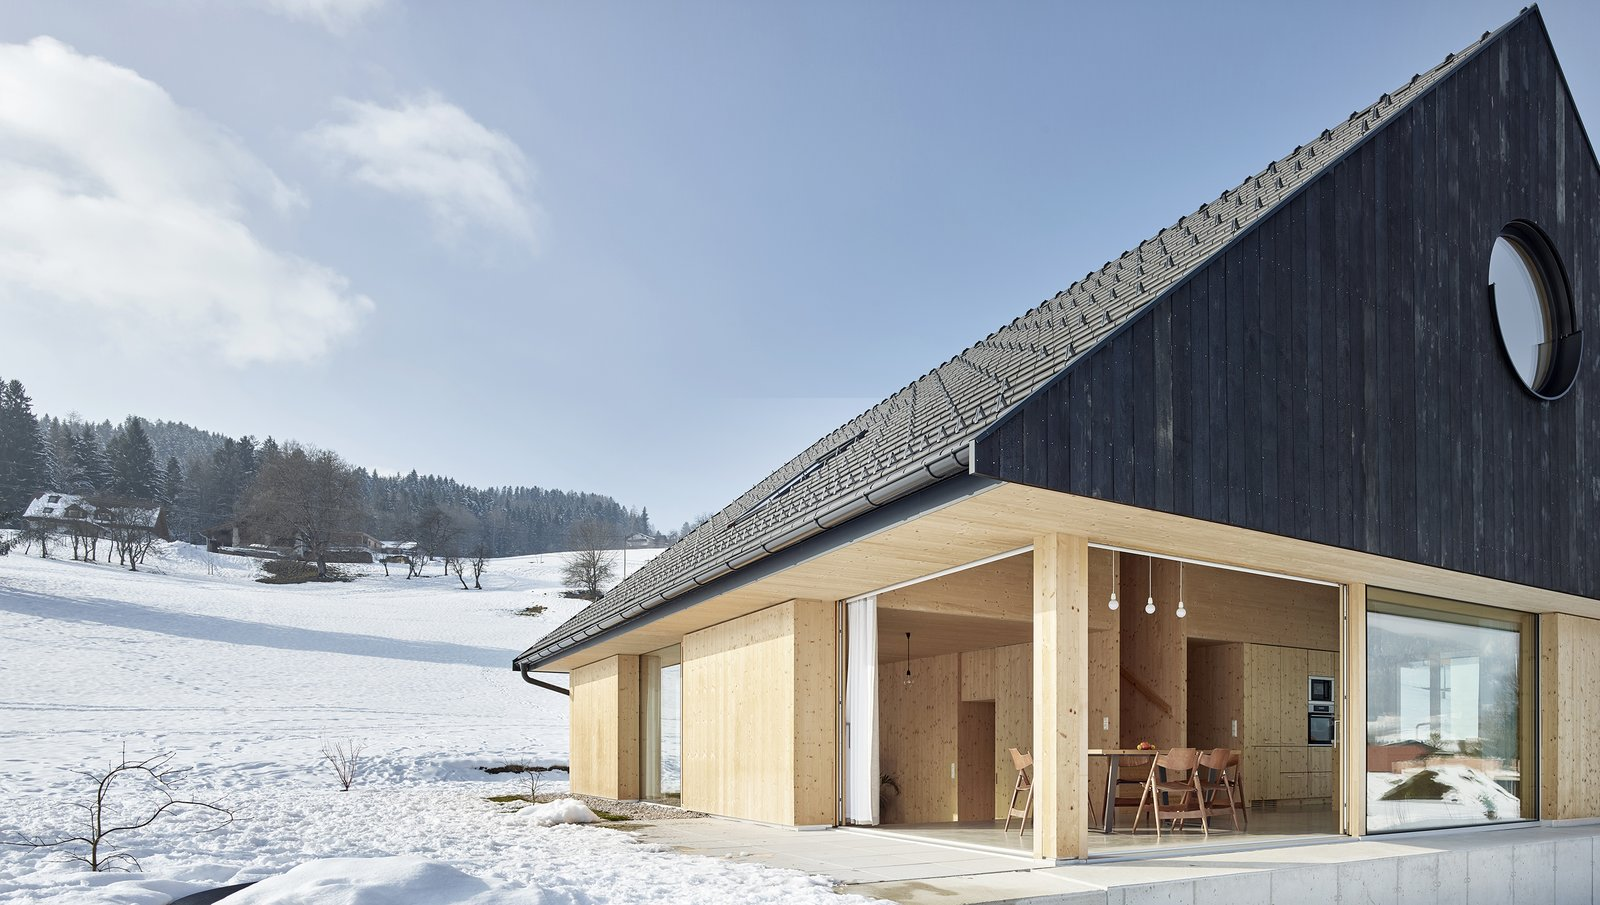 Exterior, House Building Type, Gable RoofLine, Wood Siding Material, Shingles Roof Material, Metal Roof Material, and Cabin Building Type The home has warm interiors throughout and boasts a minimalist, cabin-like aesthetic.    Best Photos from This Sleek Austrian Home Turns Into a Cozy Light Box at Night